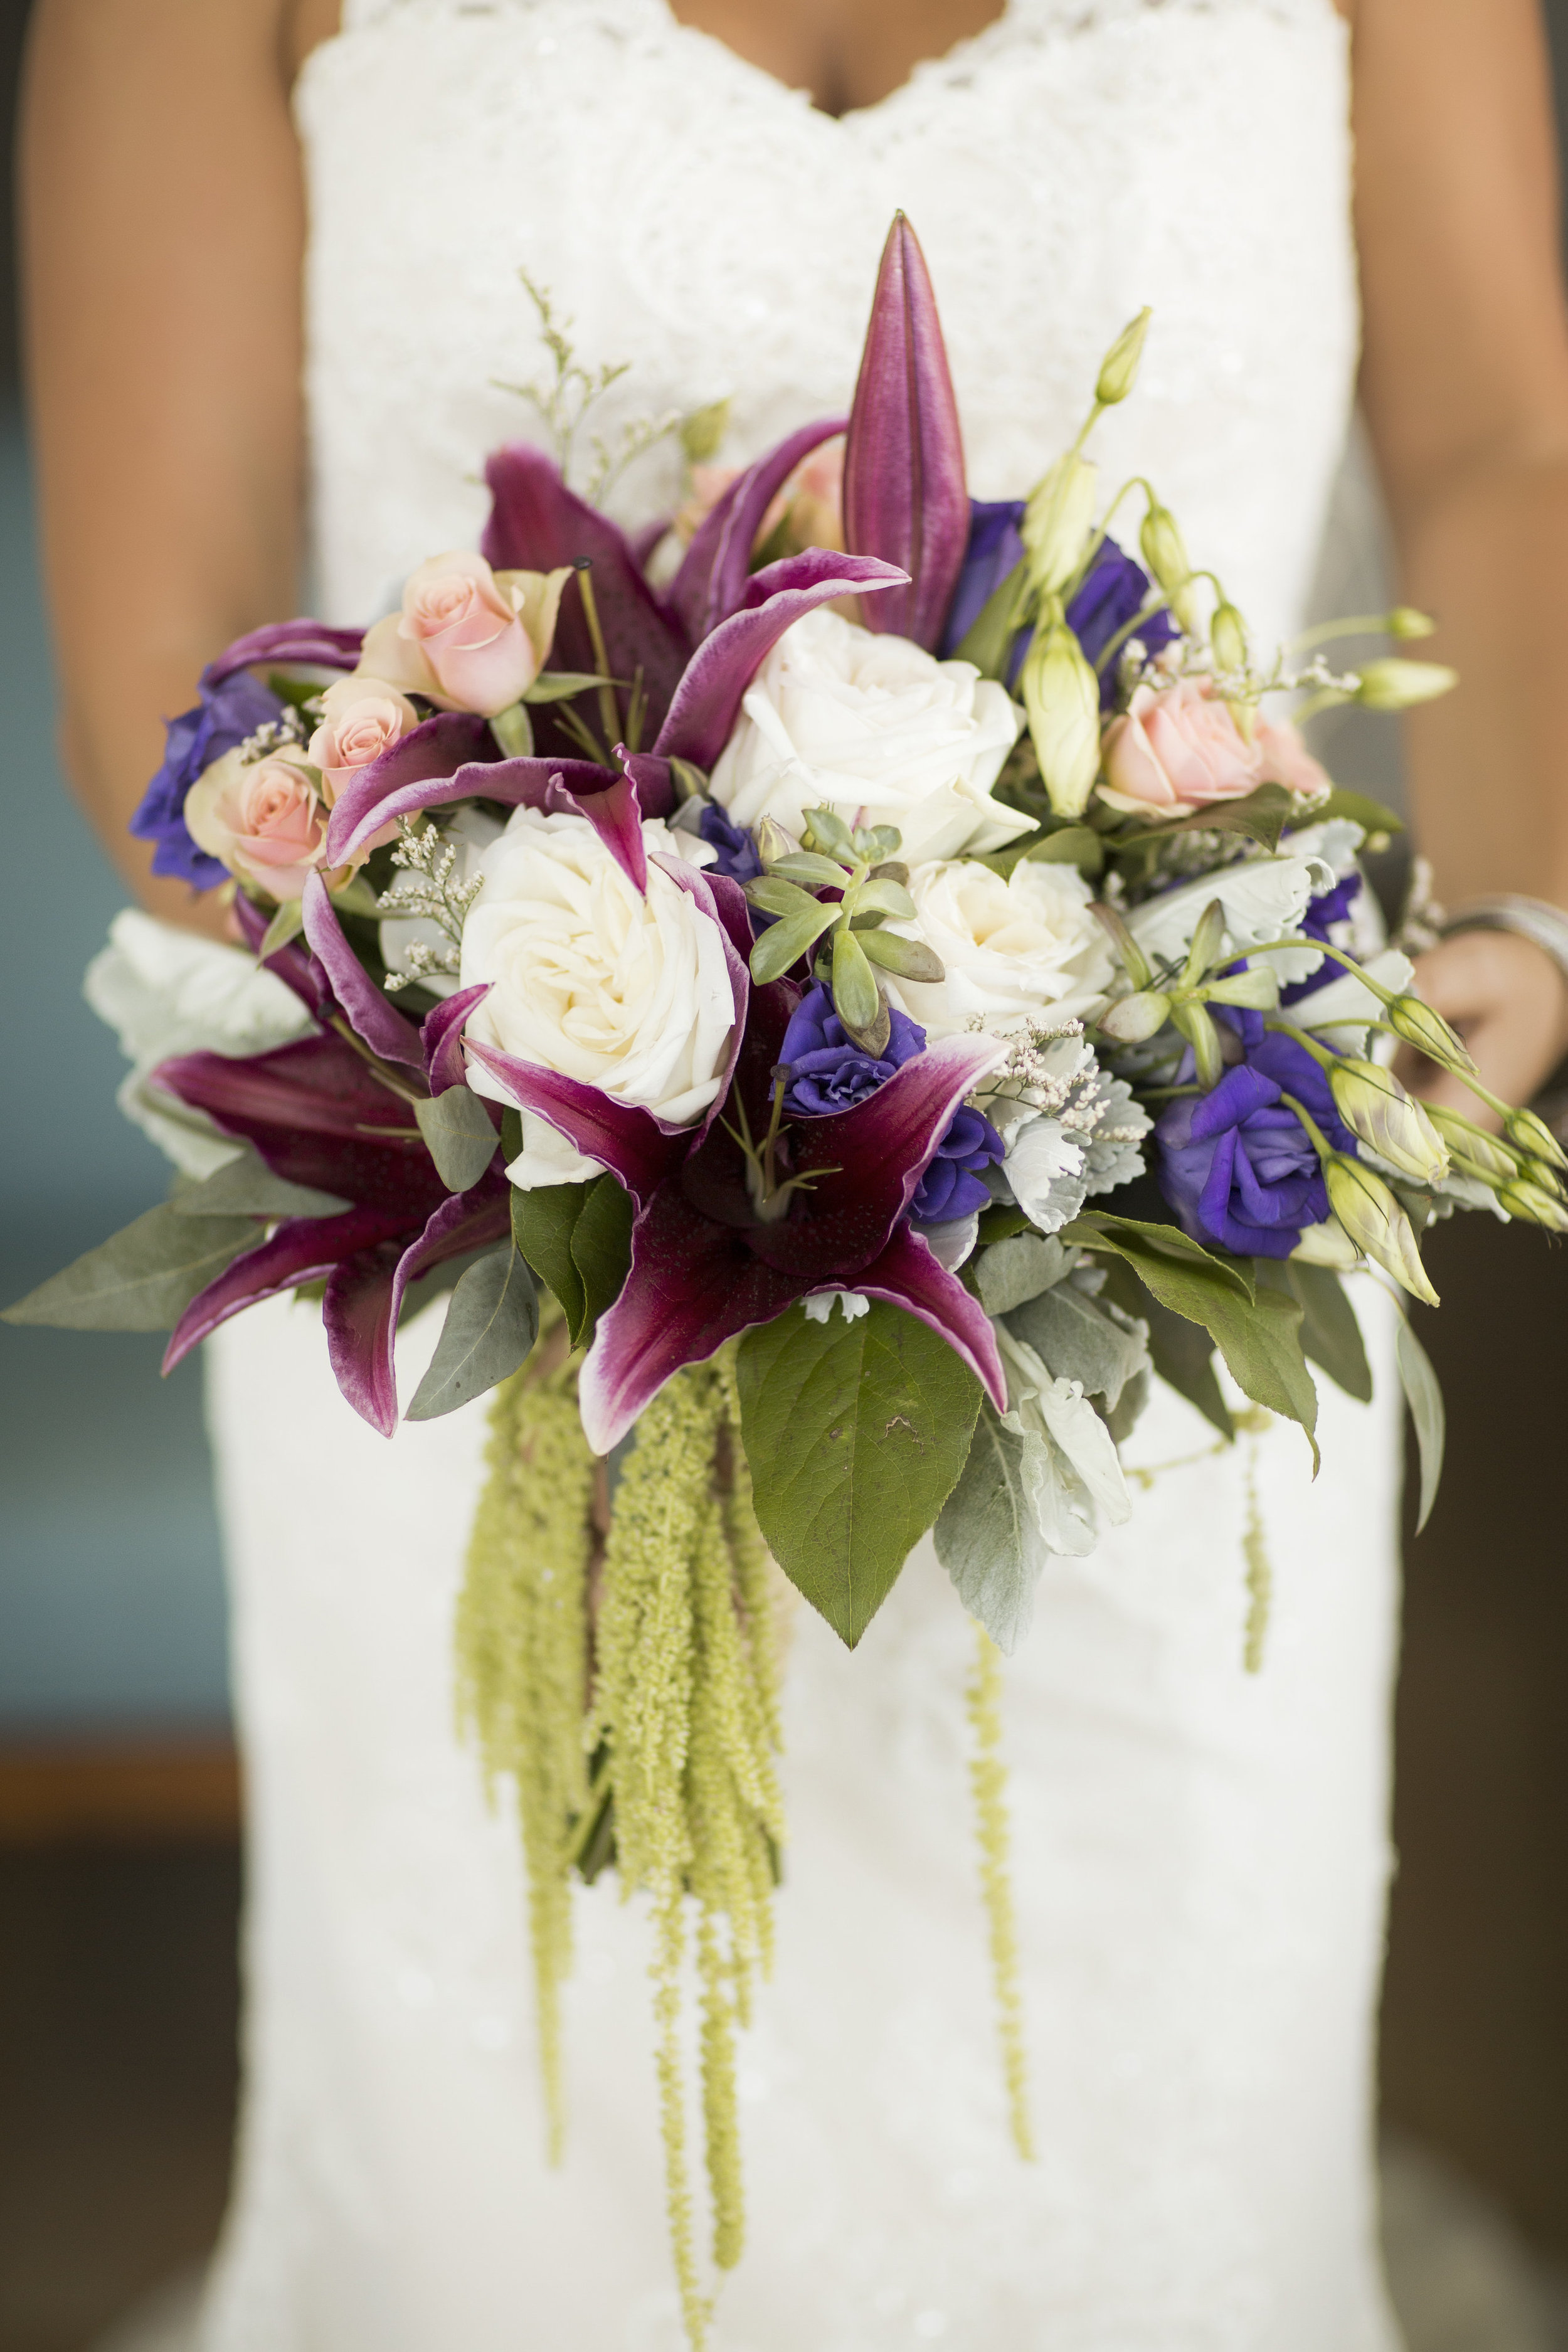 Beautiful Brides Bouquet by Fiore of Pensacola - Grace and Serendipity + Aislinn Kate